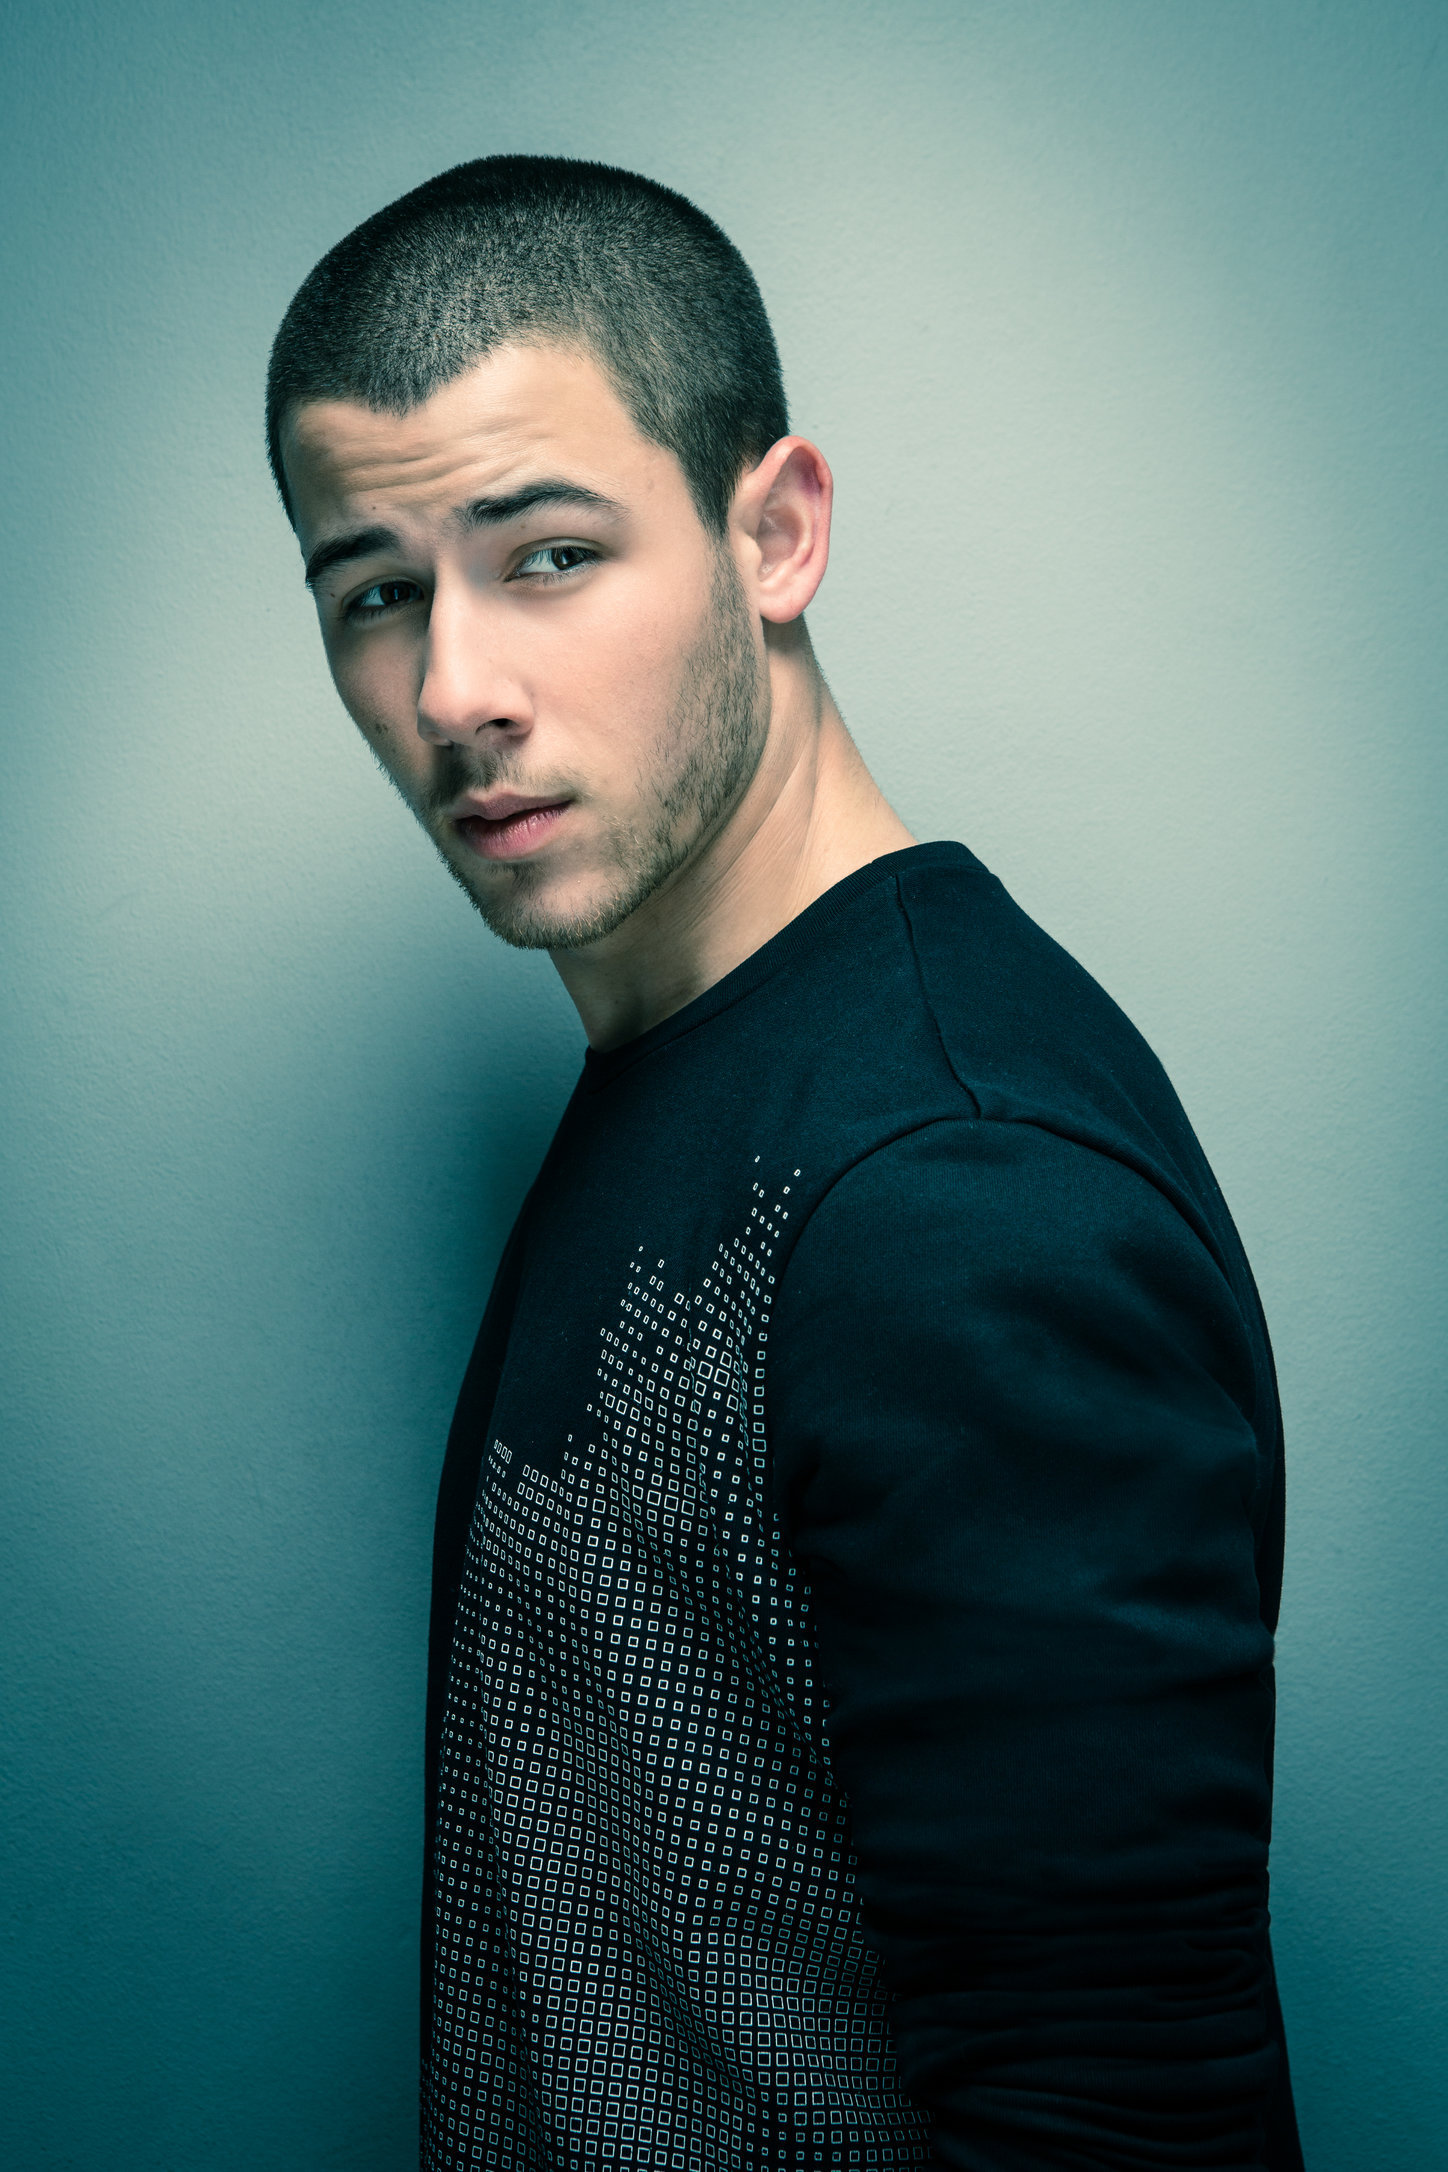 nick jonas, actor